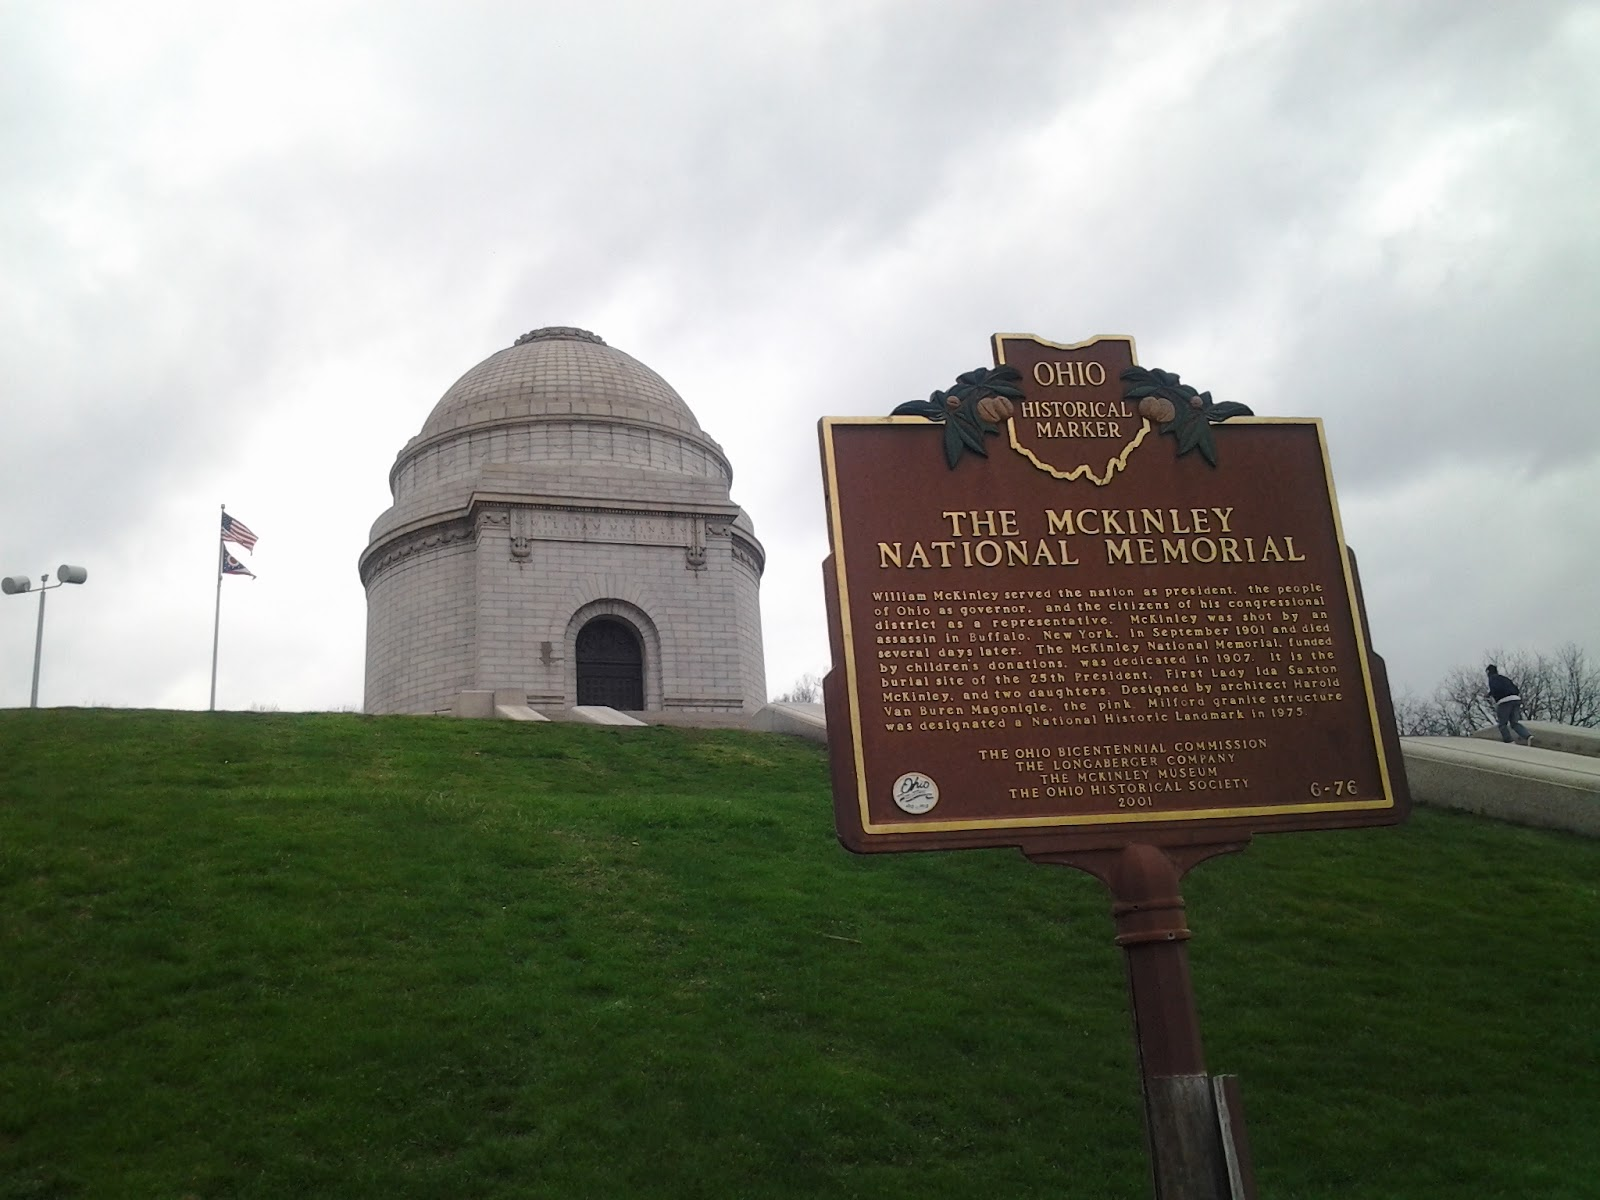 mountain shaped mckinley tomb in canton oh